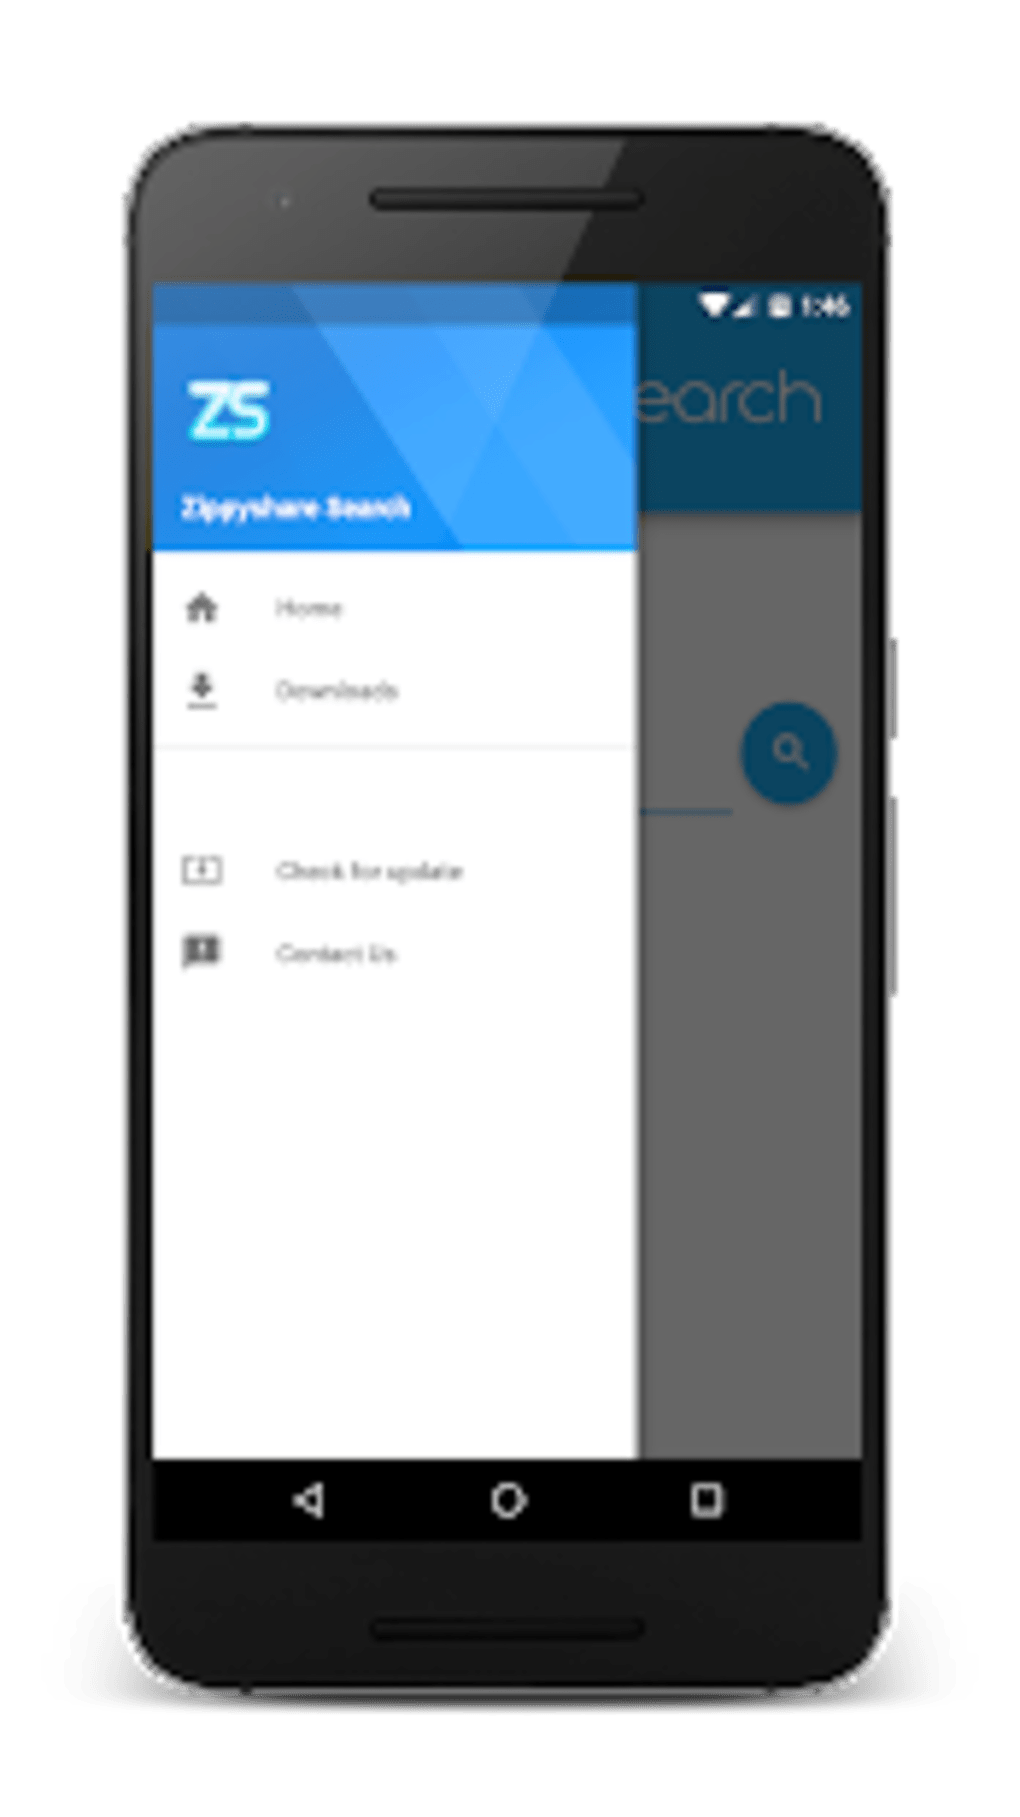 Zippyshare Search Apk For Android Download